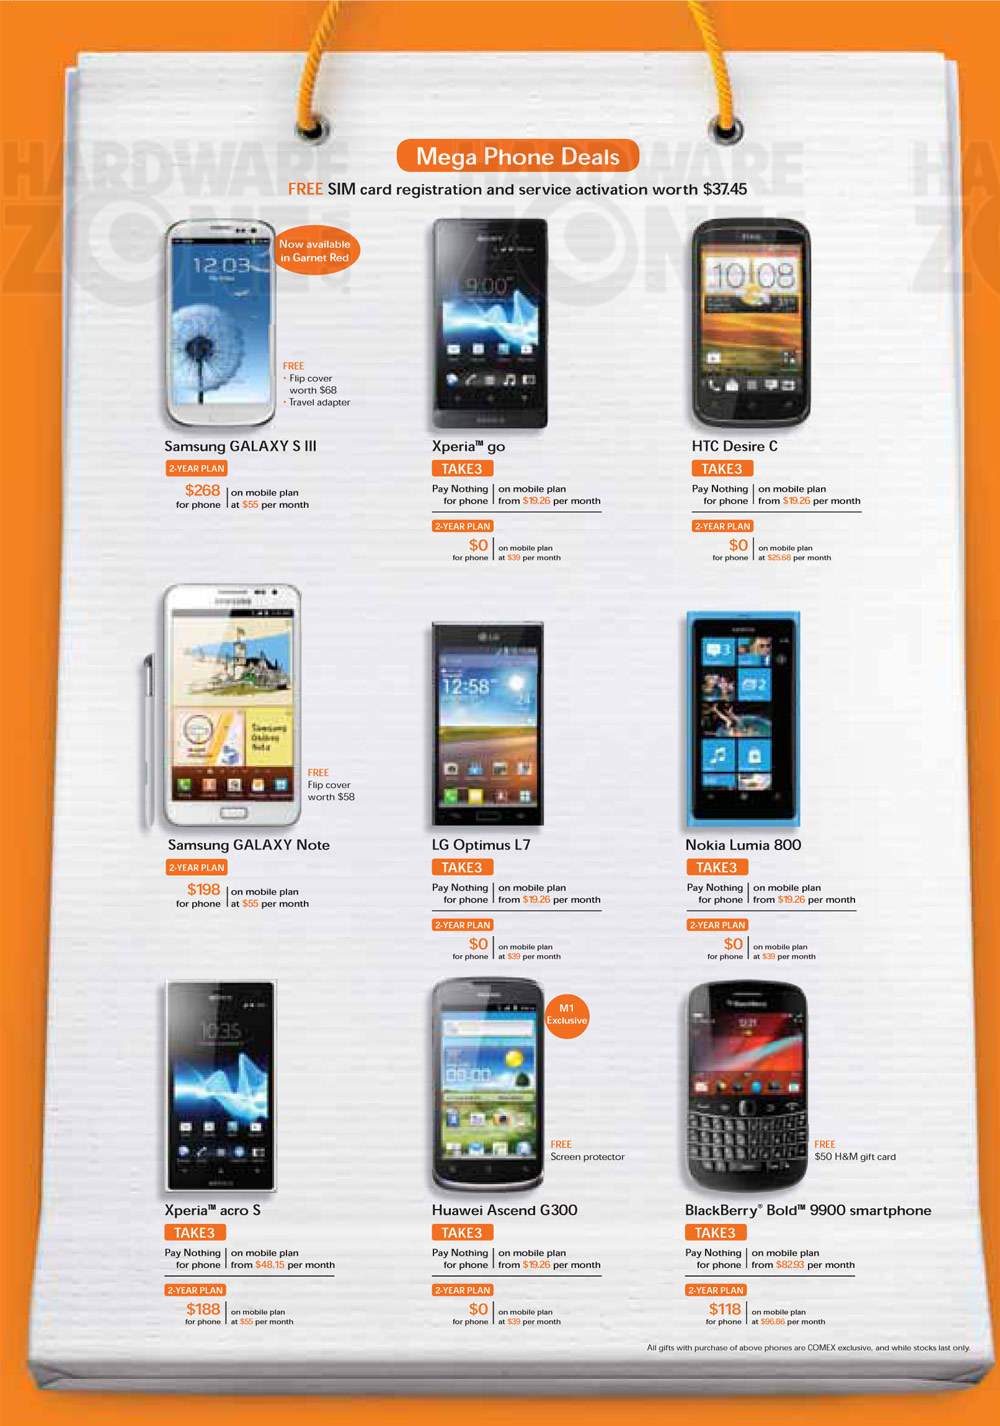 Mobile Phone Deals M1 Singtel Amp Starhub Comex 2012 Telco Tablets Gps And Mobile